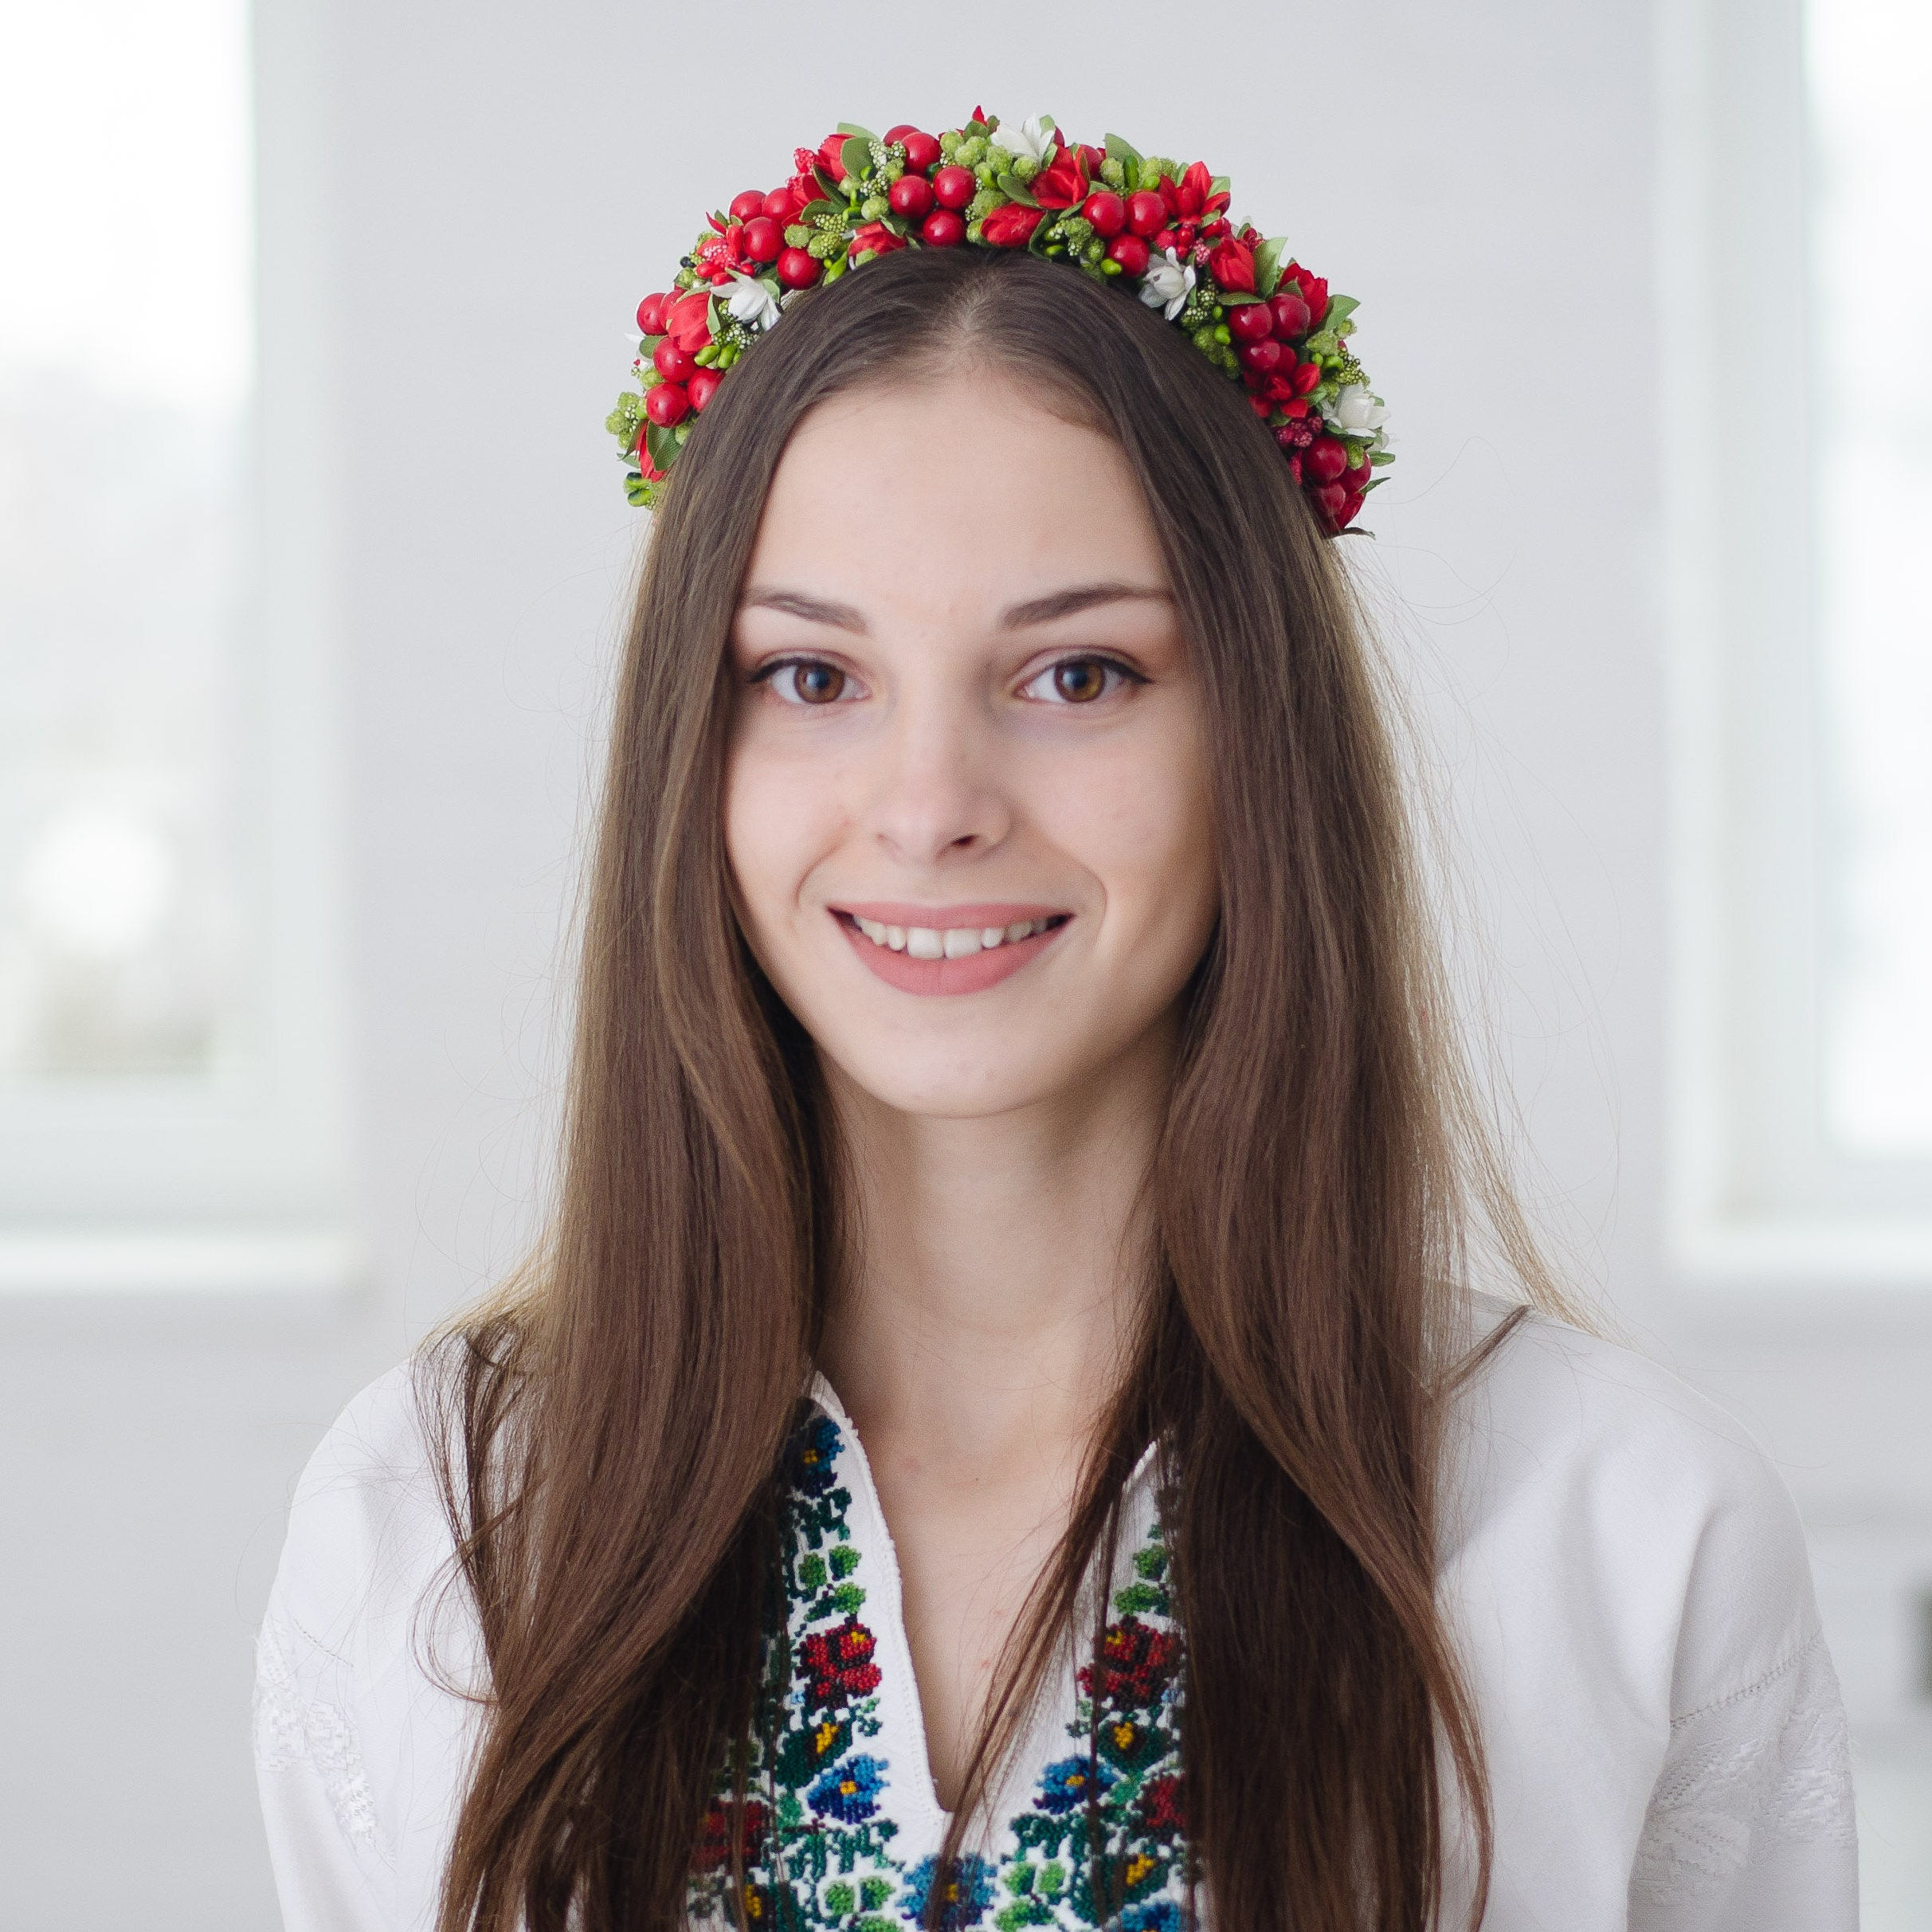 Vinok rose flower crown ukrainian headband red roses request a custom order and have something made just for you izmirmasajfo